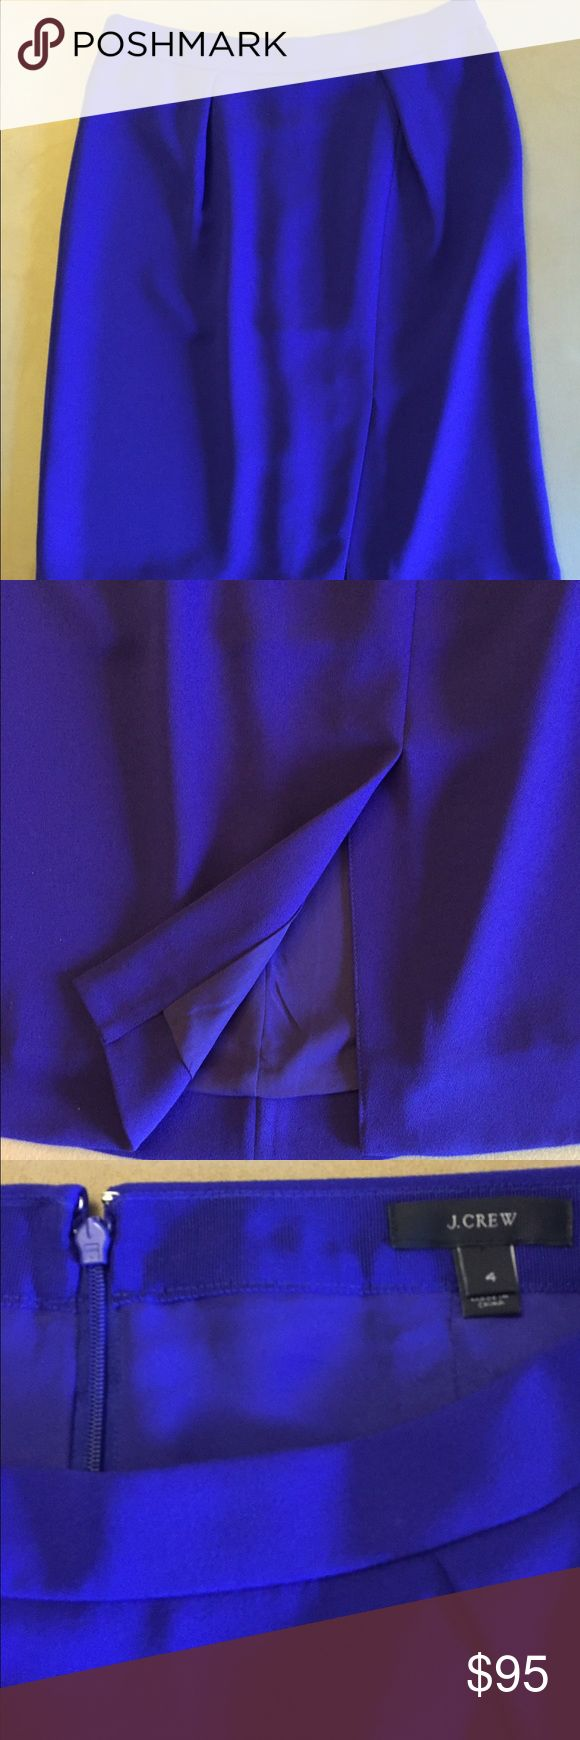 "J.Crew crepe drape pencil skirt, purple. Beautiful royal purple fabric (last photo is incorrect color, but shows fit on model). Pleats and split in front take this drapey pencil skirt up a notch. Fully lined. Size 4. Sits at waist, 23"" in length. Never worn. J. Crew Skirts Pencil"